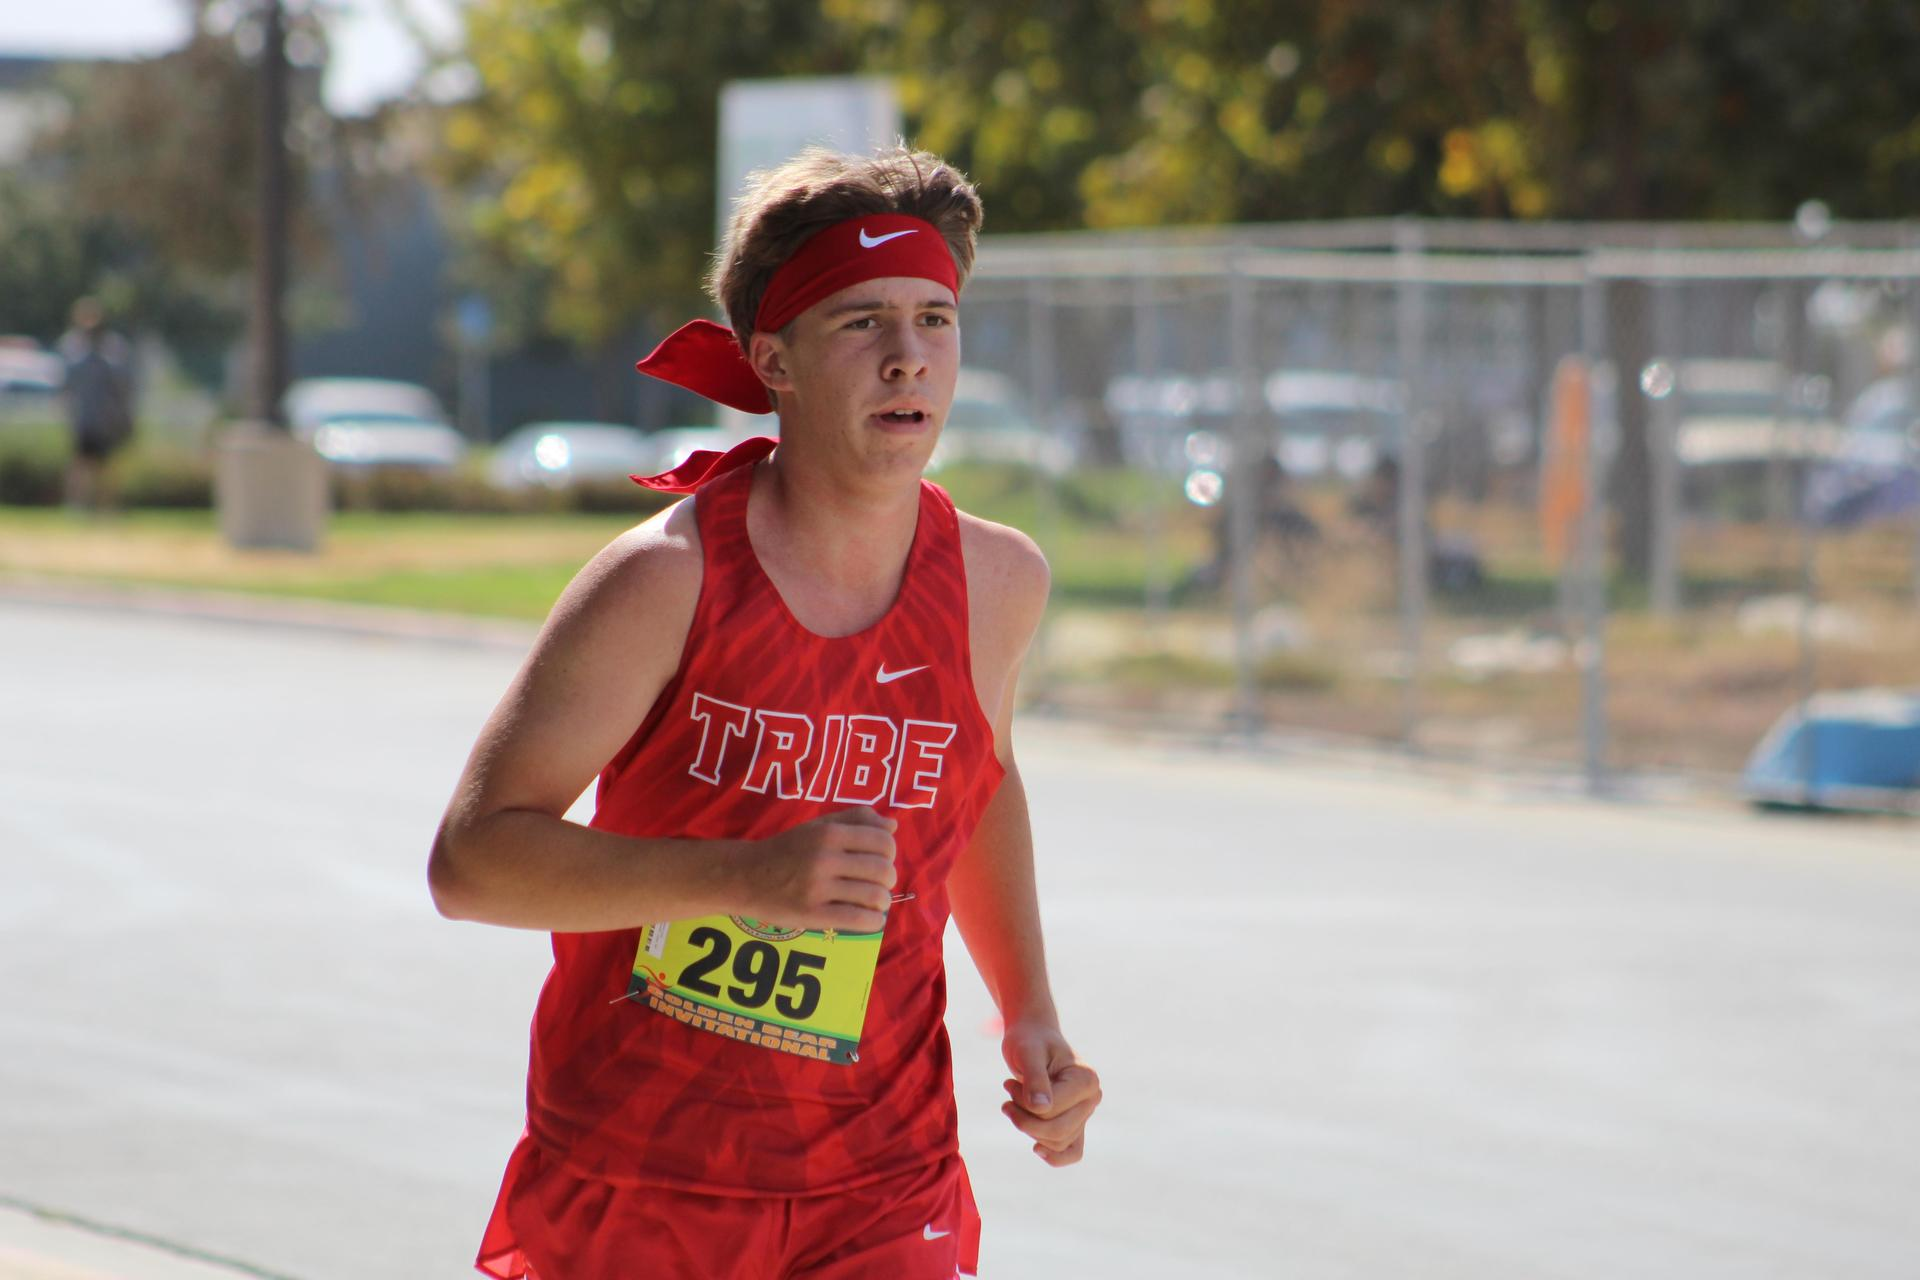 Boys Cross Country Running at Sierra Pacific